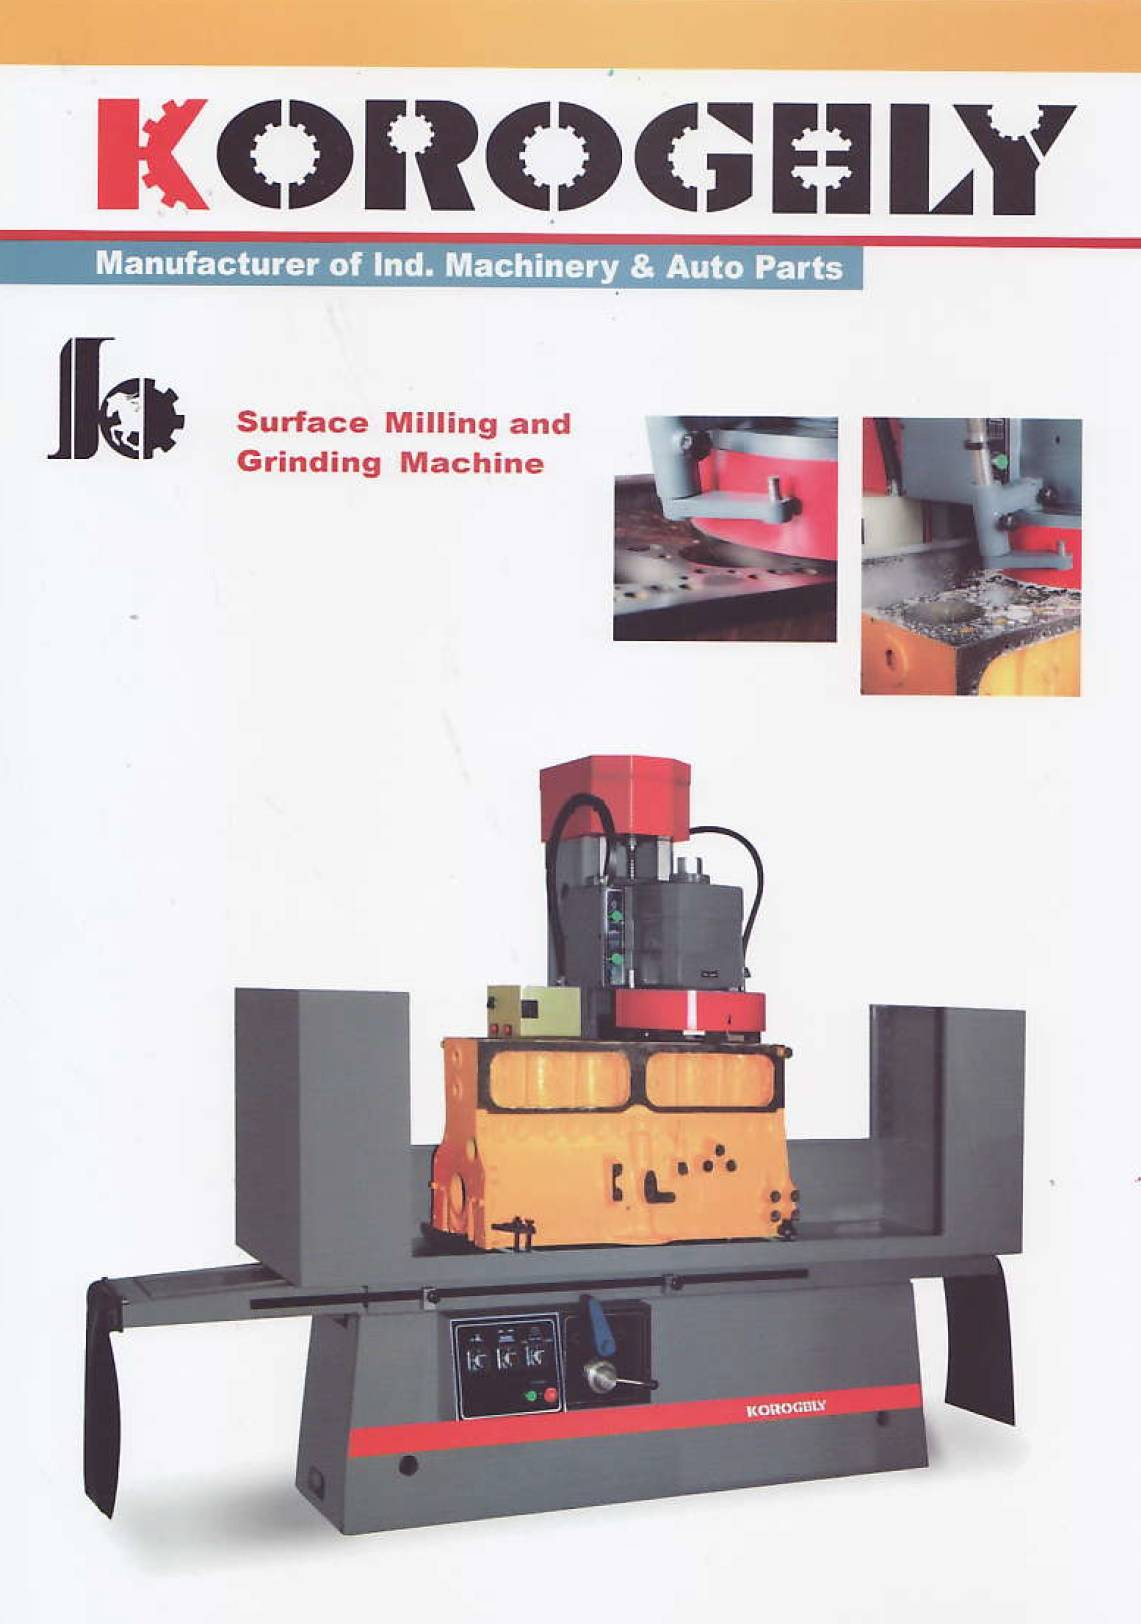 Surface Milling and Grinding Machine